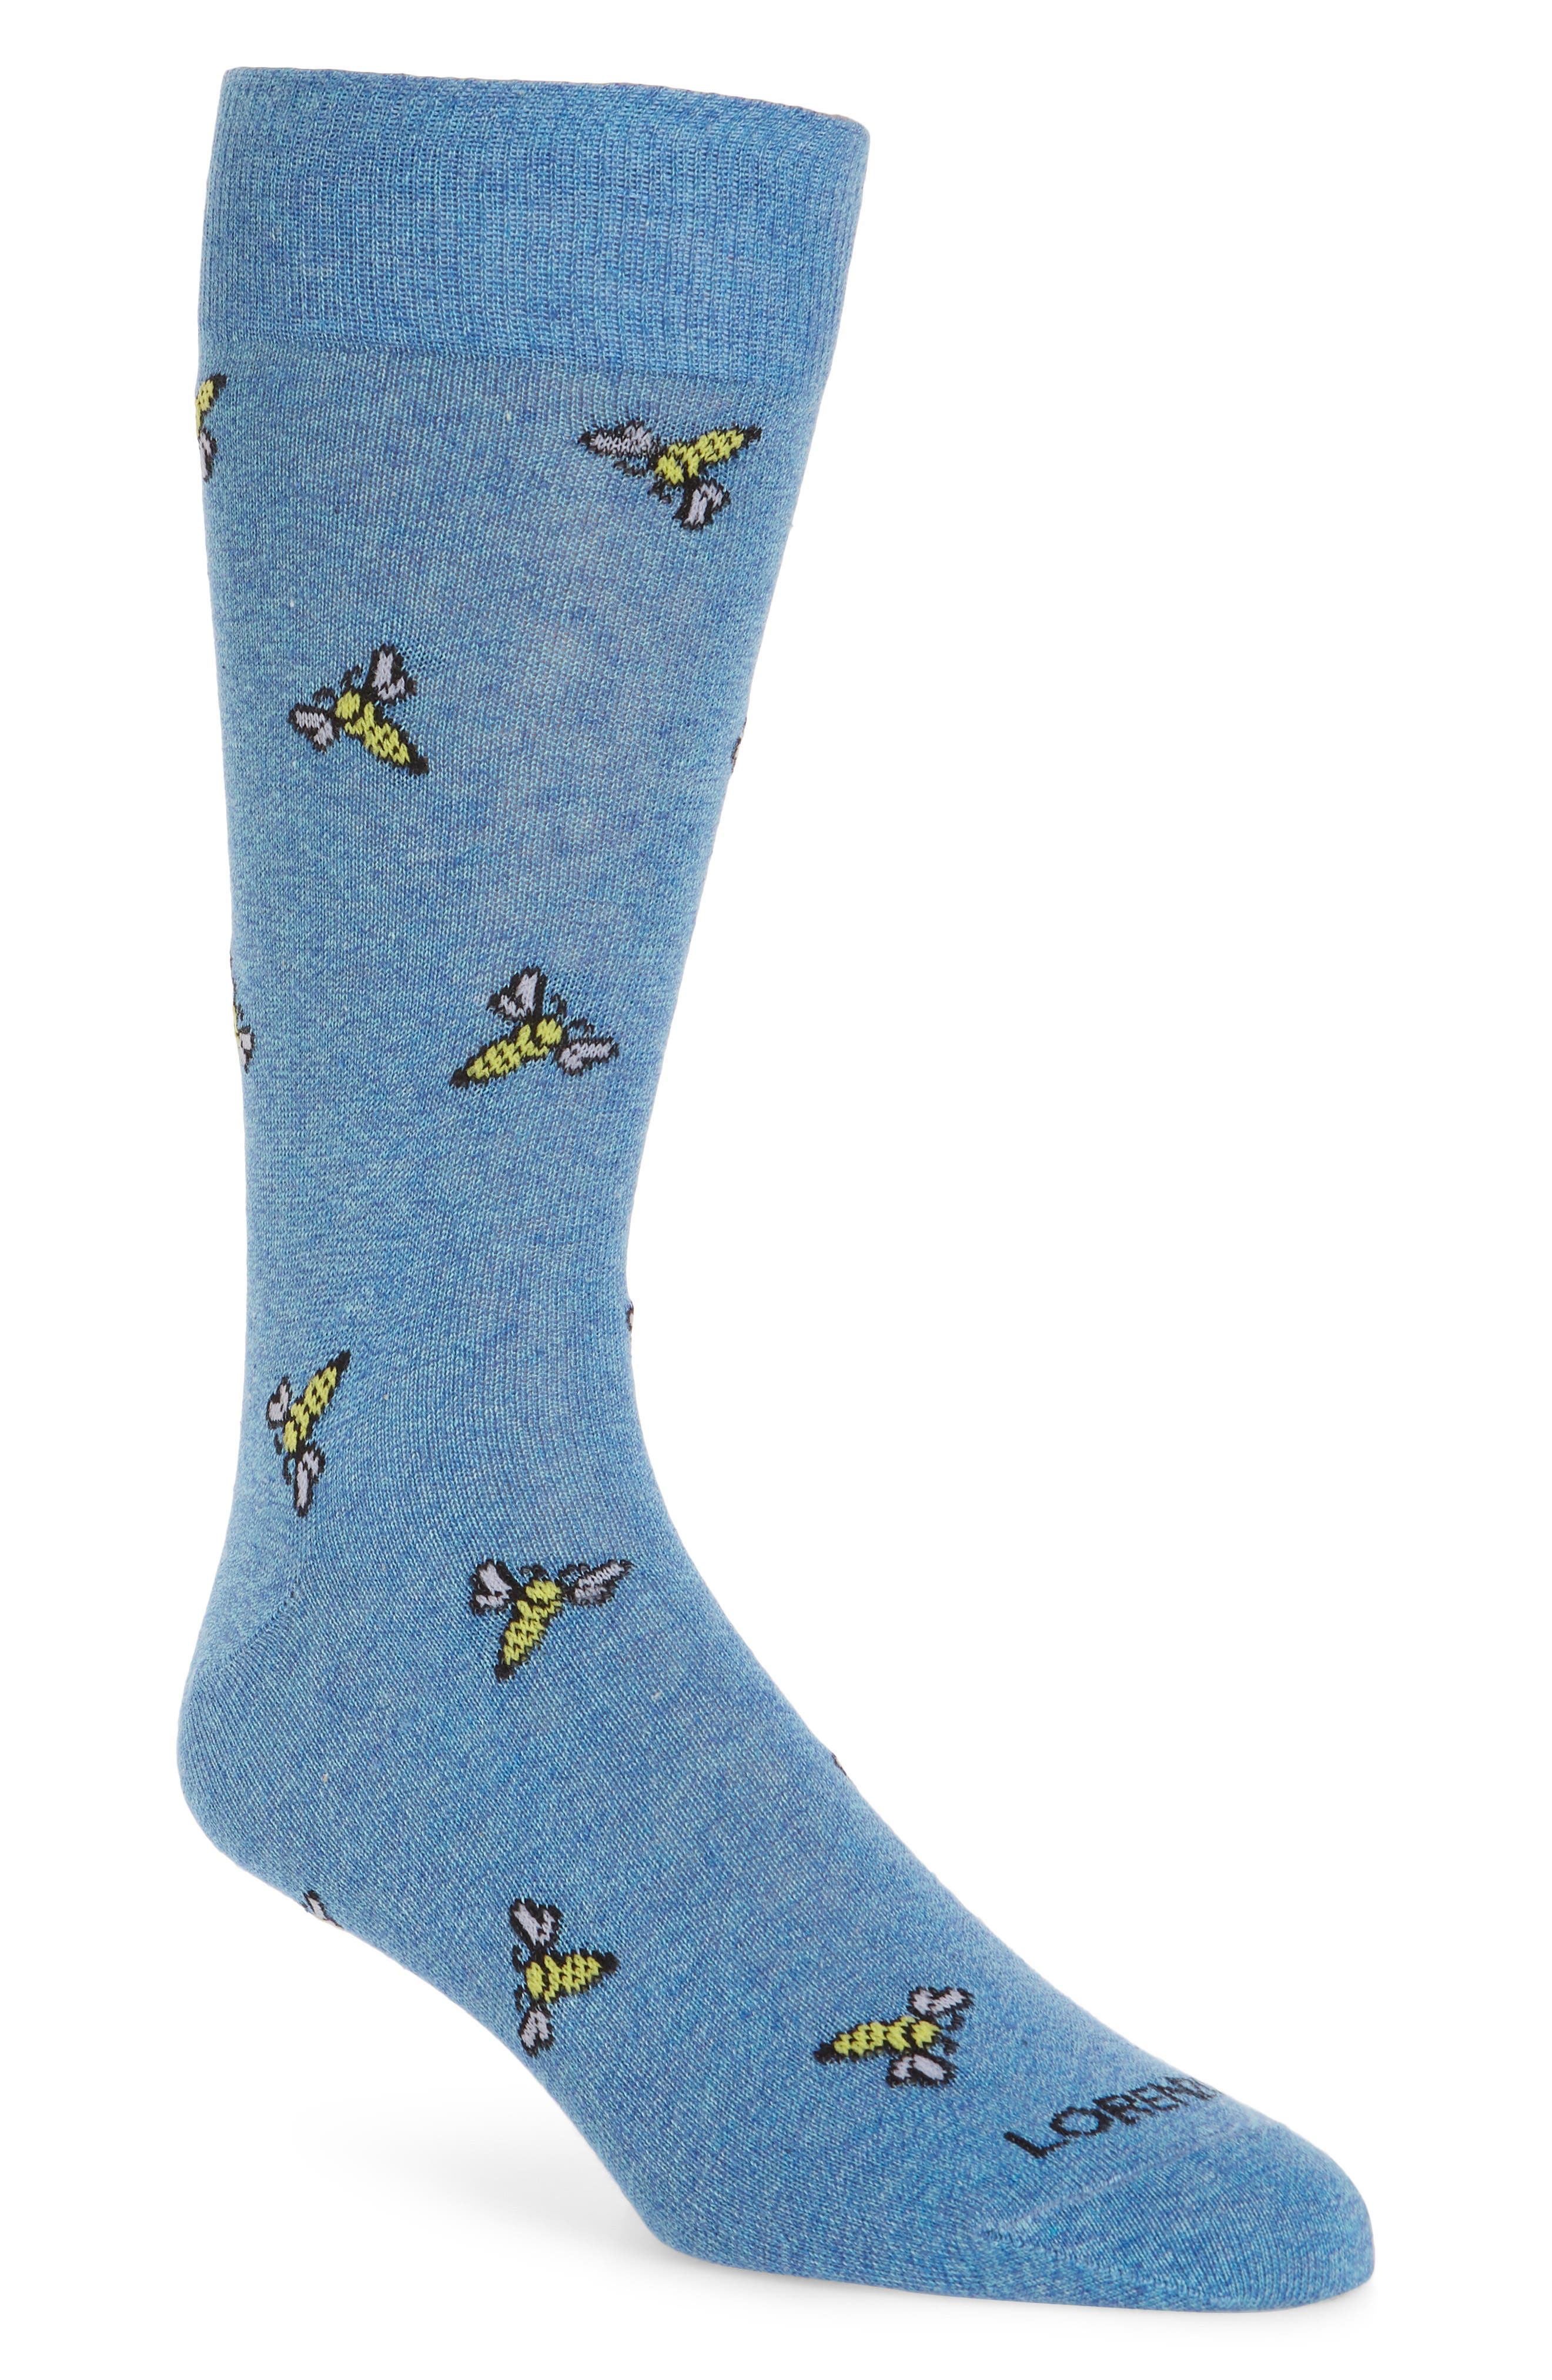 Bees Crew Socks,                         Main,                         color, Light Blue